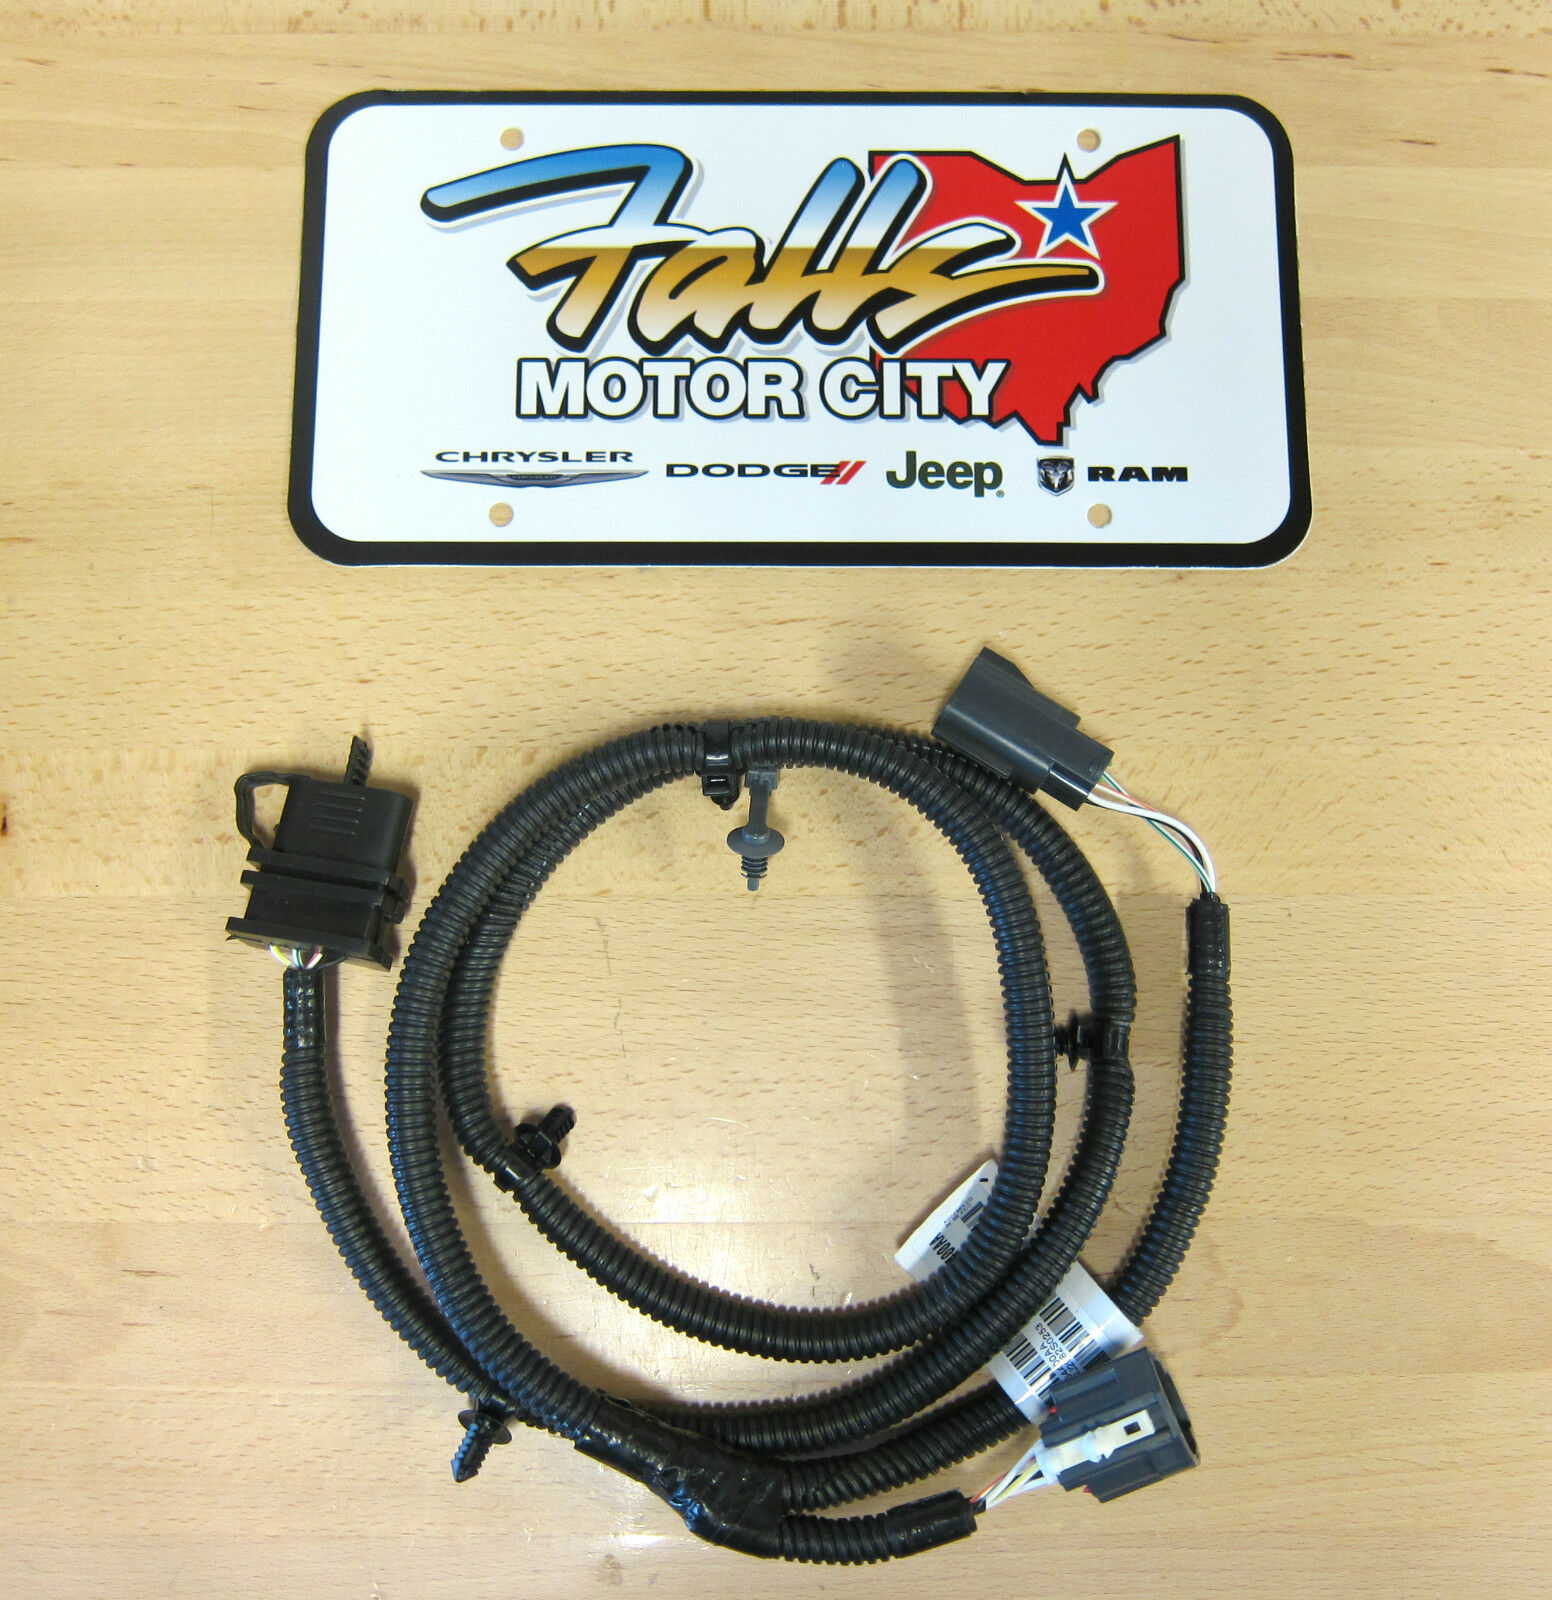 s l1600 jeep wrangler trailer tow wiring harness oem mopar 82210213 jk 4 mopar wiring harness at edmiracle.co